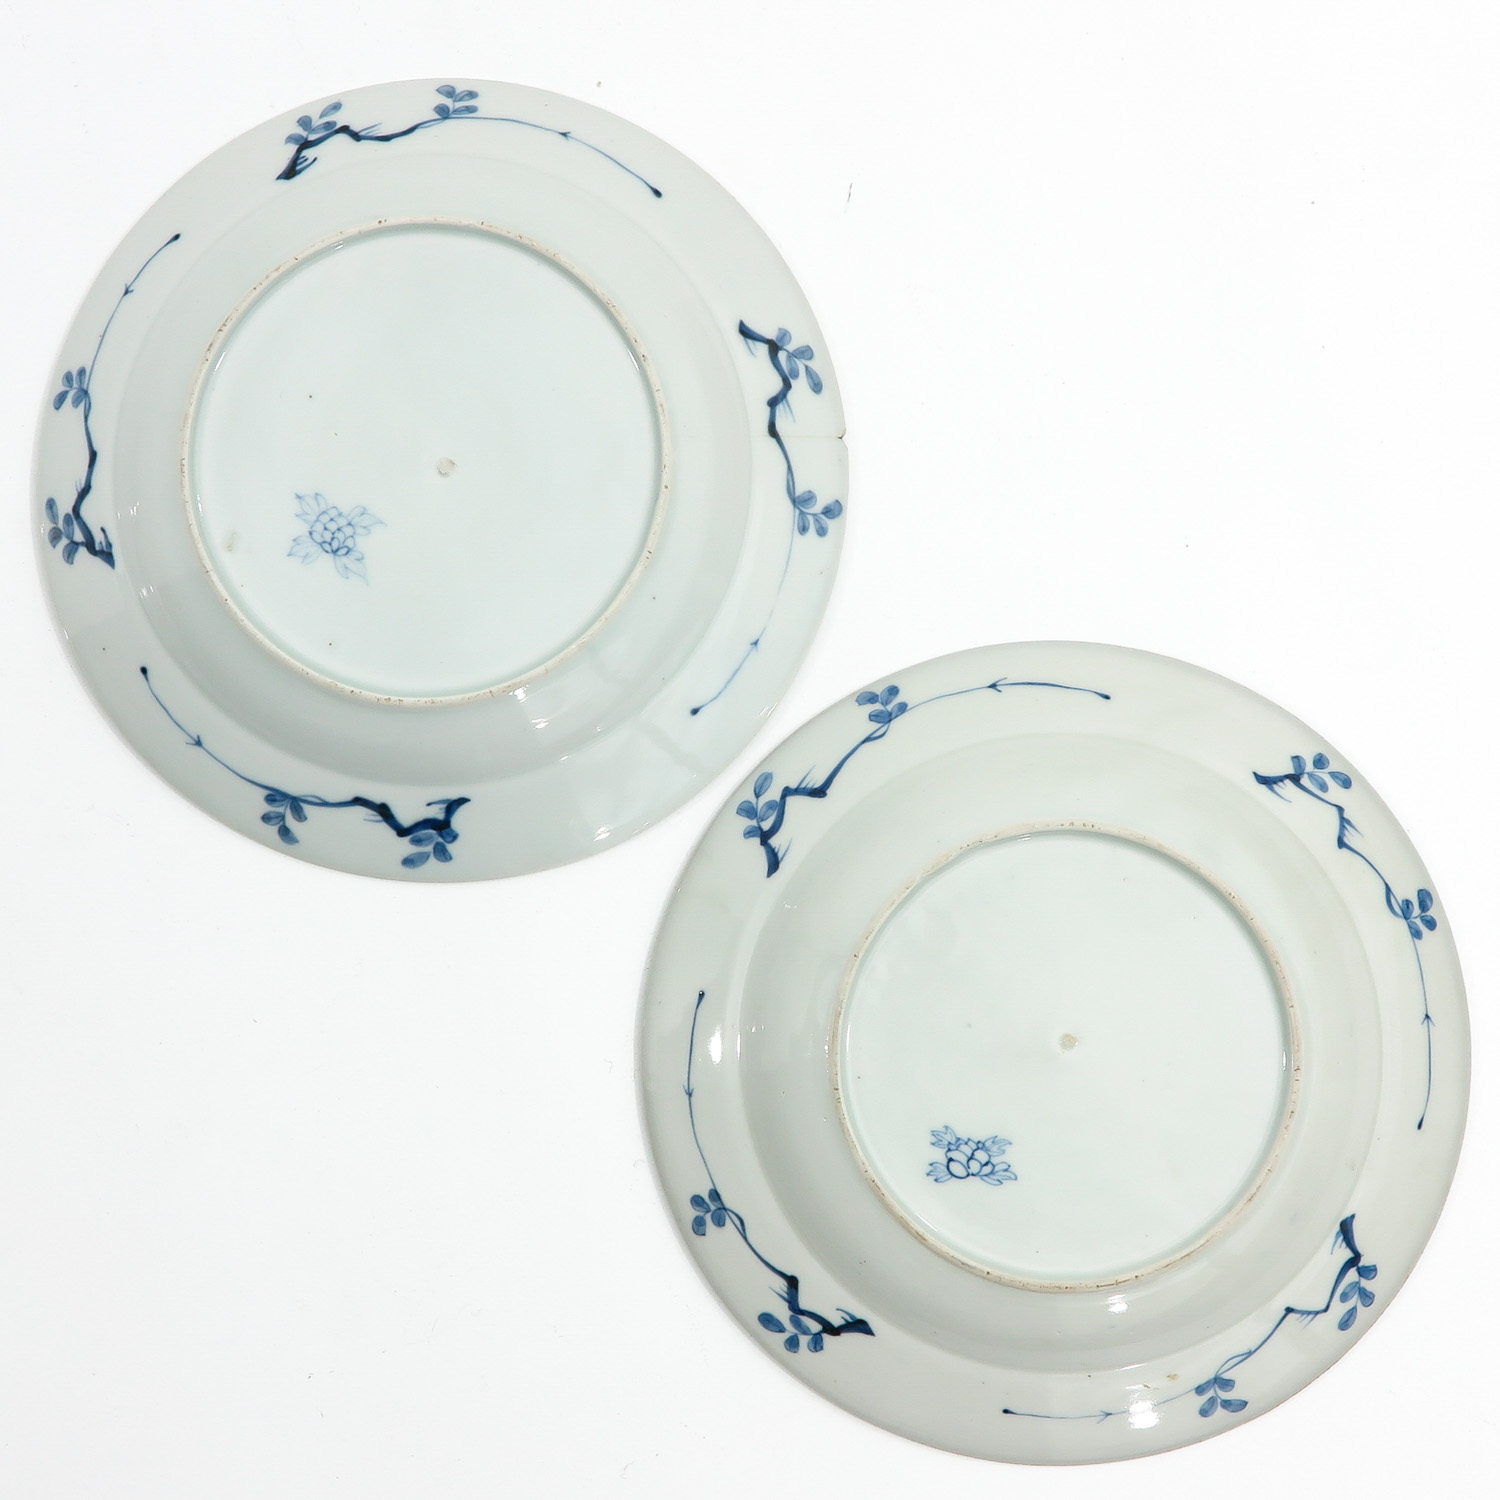 A Series of 6 Blue and White Plates - Image 8 of 10